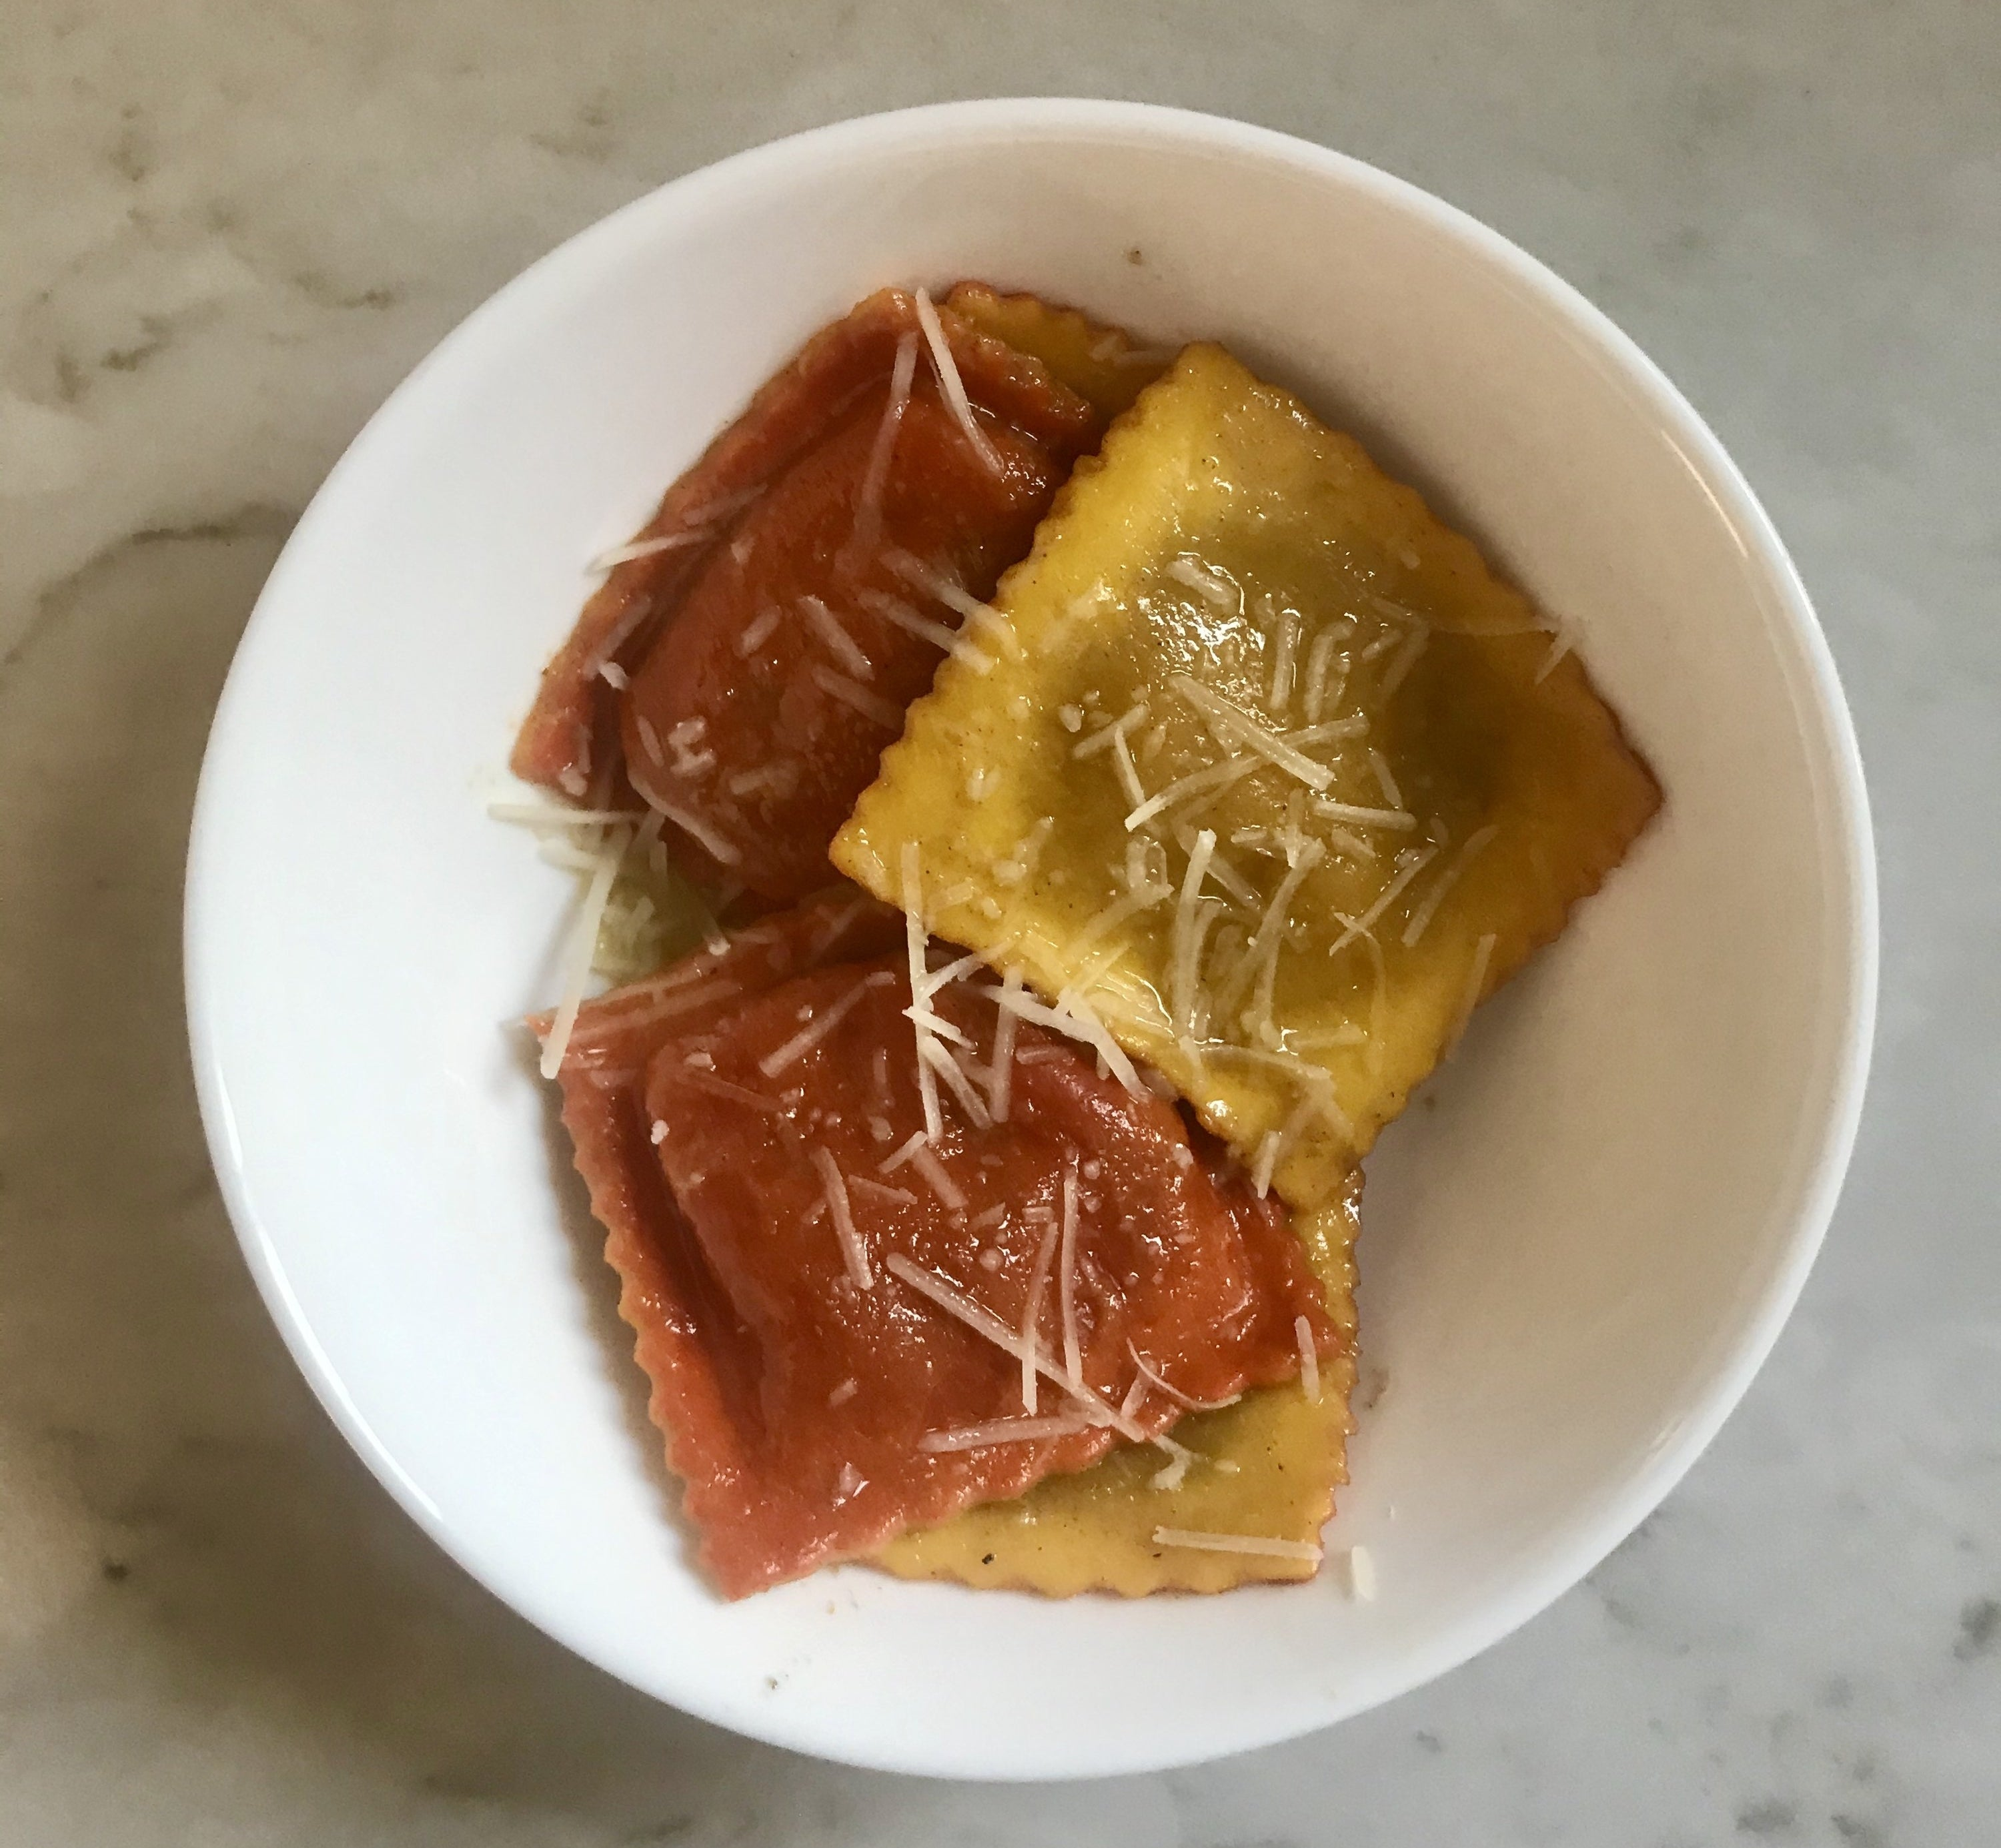 A white bowl filled with orange and yellow raviolis topped with a butter sauce and shreds of parmesan cheese